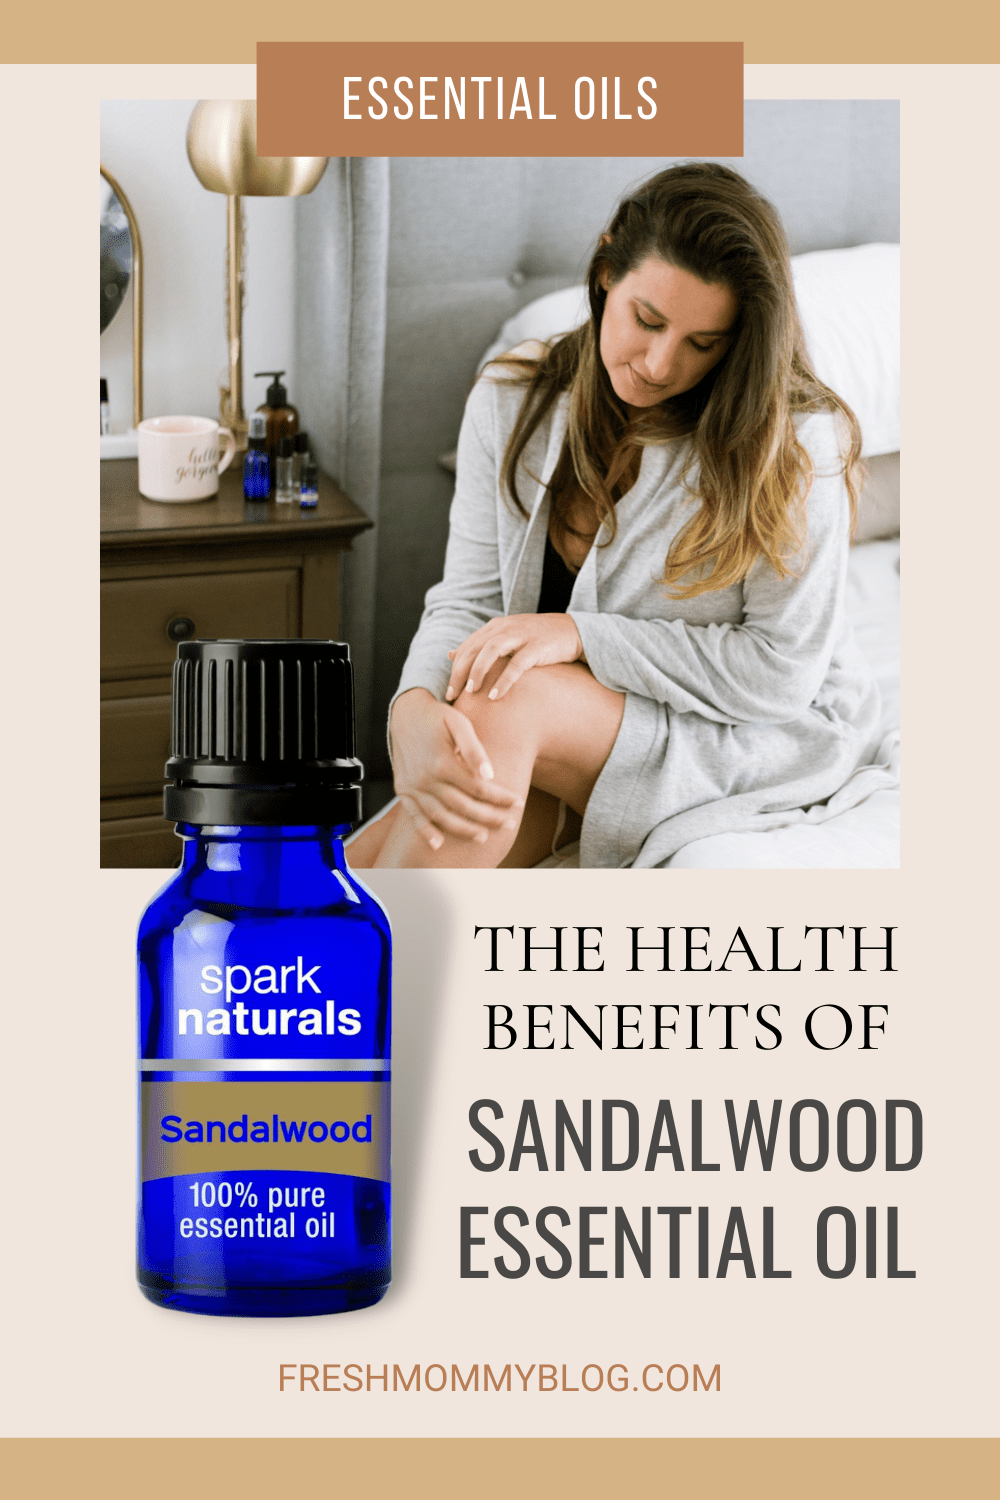 Surprising Sandalwood Essential Oil Health Benefits and Uses! Sandalwood essential oil has become a must-have in my natural medicine cabinet. We love using it in diffuser blends, but we also use it for medicinal purposes. It's surprising how versatile Sandalwood is!